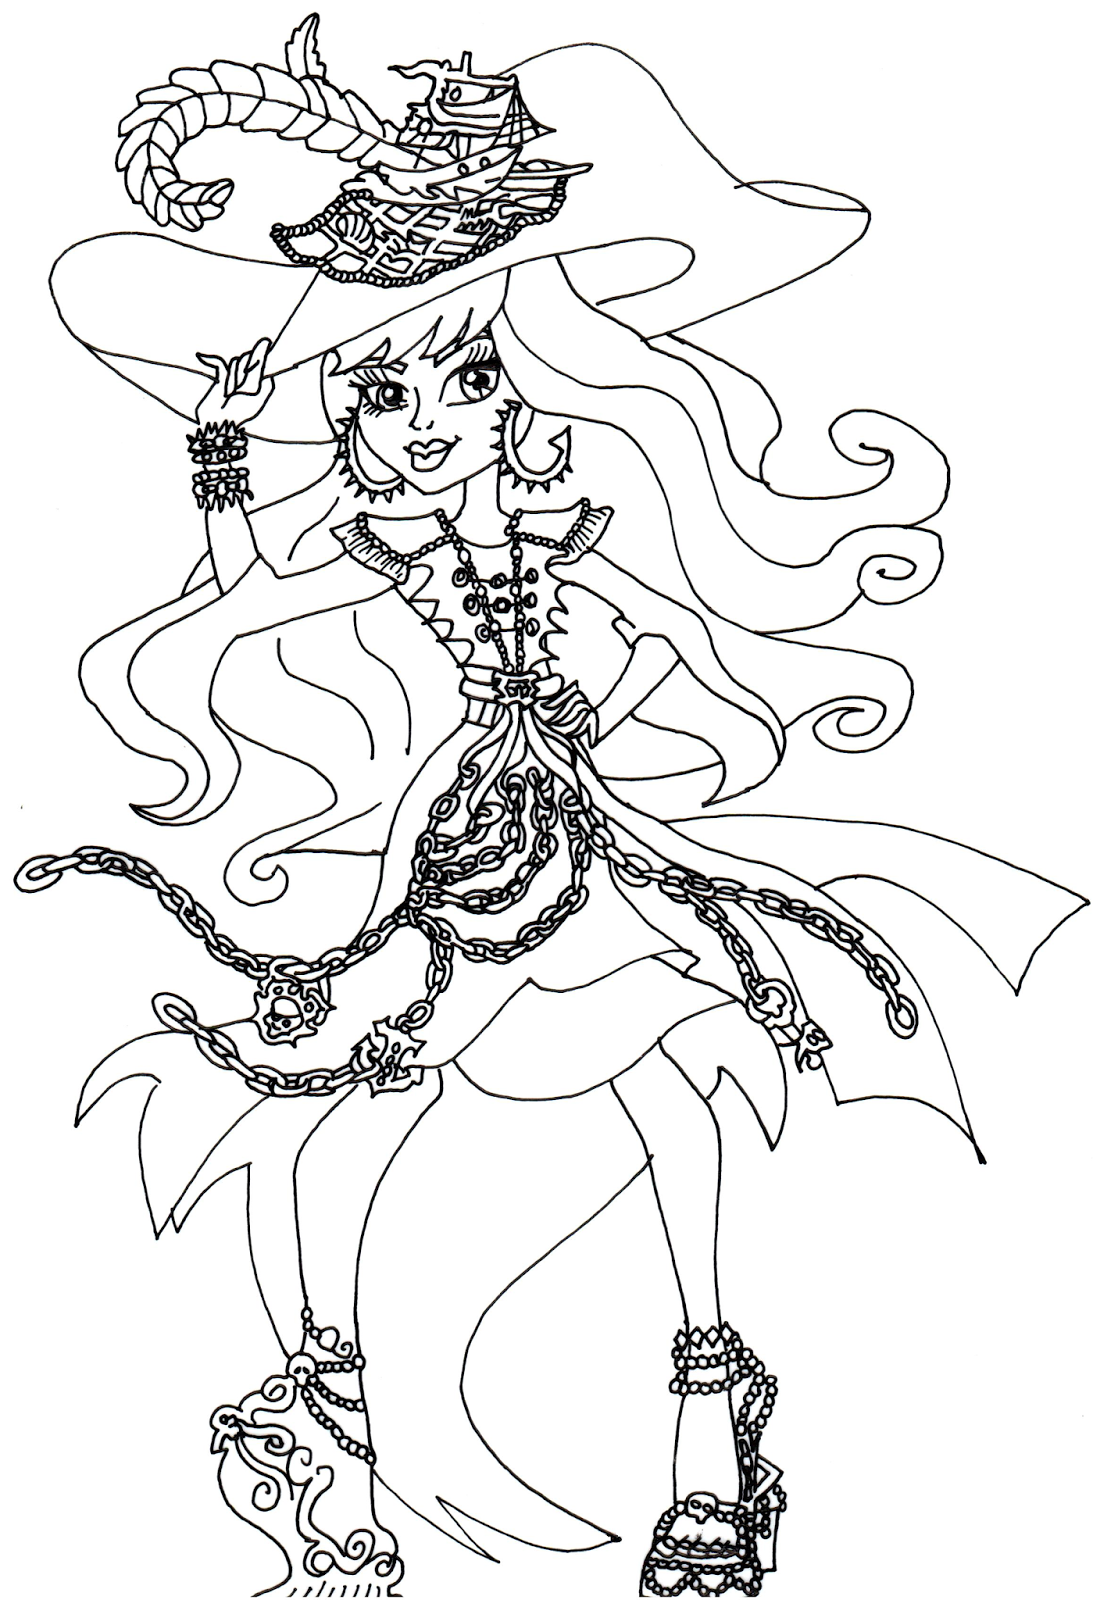 Free Printable Monster High Coloring Pages Vandala Doubloons Monster High Coloring Page